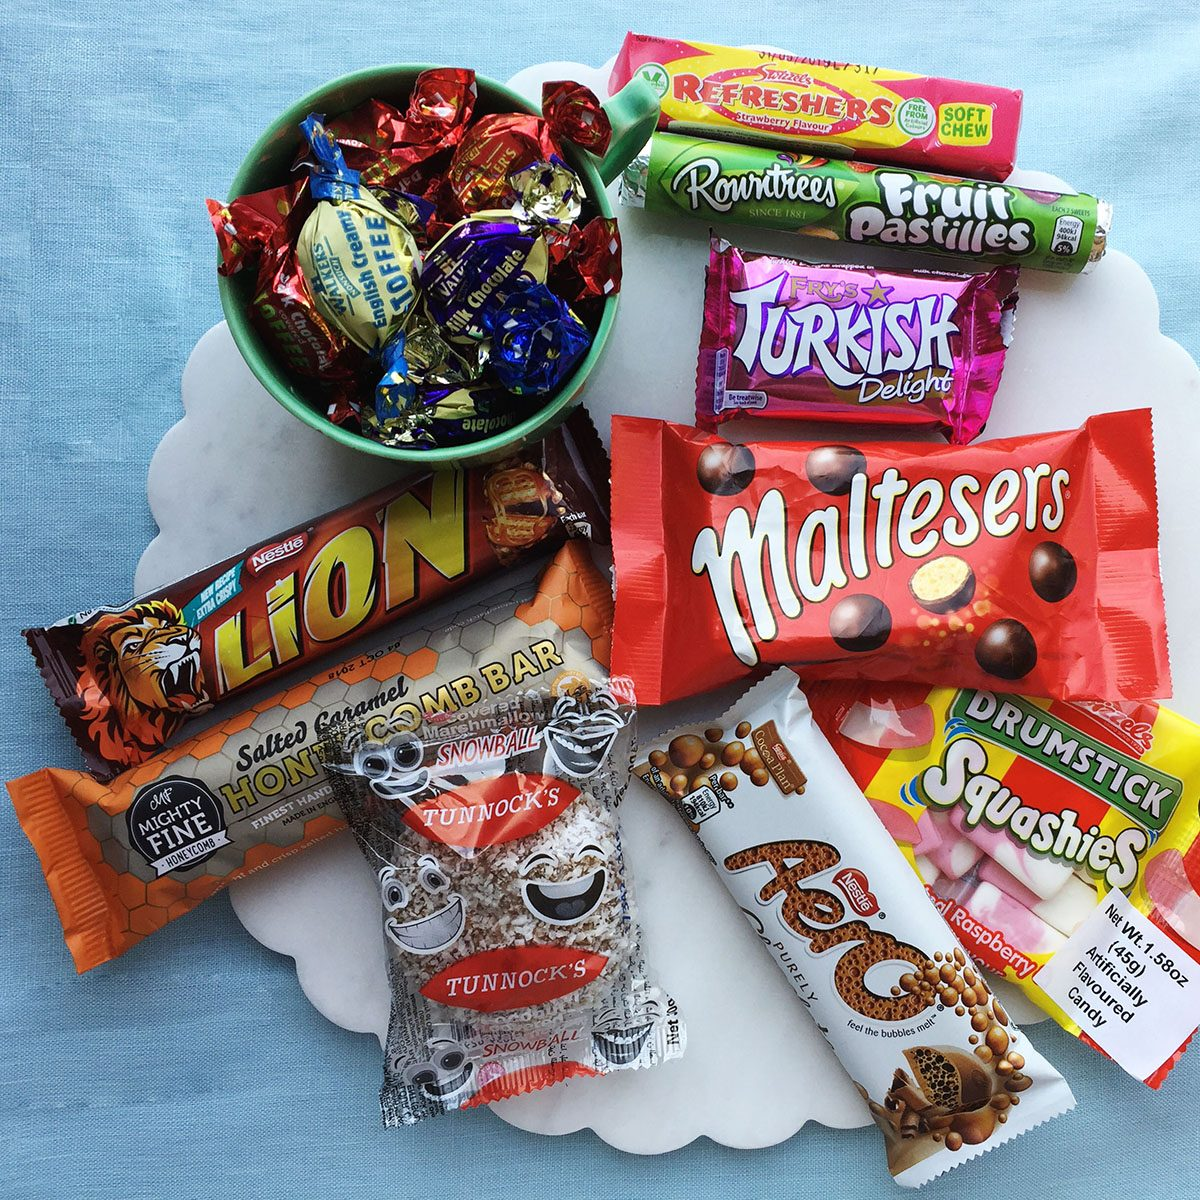 We Tried 10 Kinds of British Candy (and There Was One We Absolutely Adored)